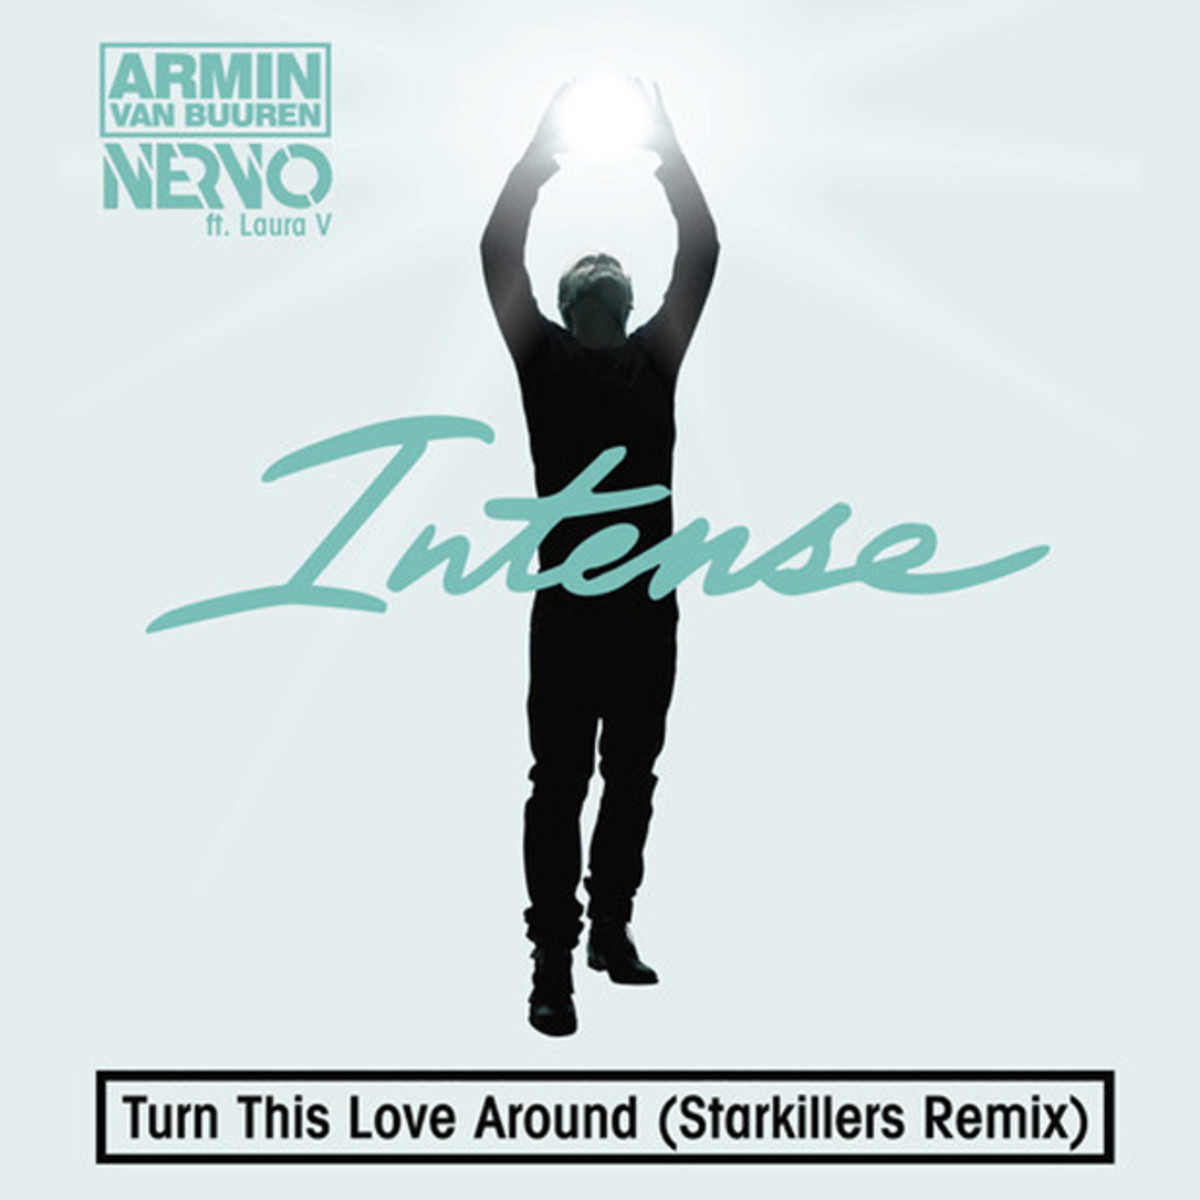 EDM Premier: Armin van Buuren vs Nervo ft. Laura V 'Turn This Love Around' (Starkillers Remix)